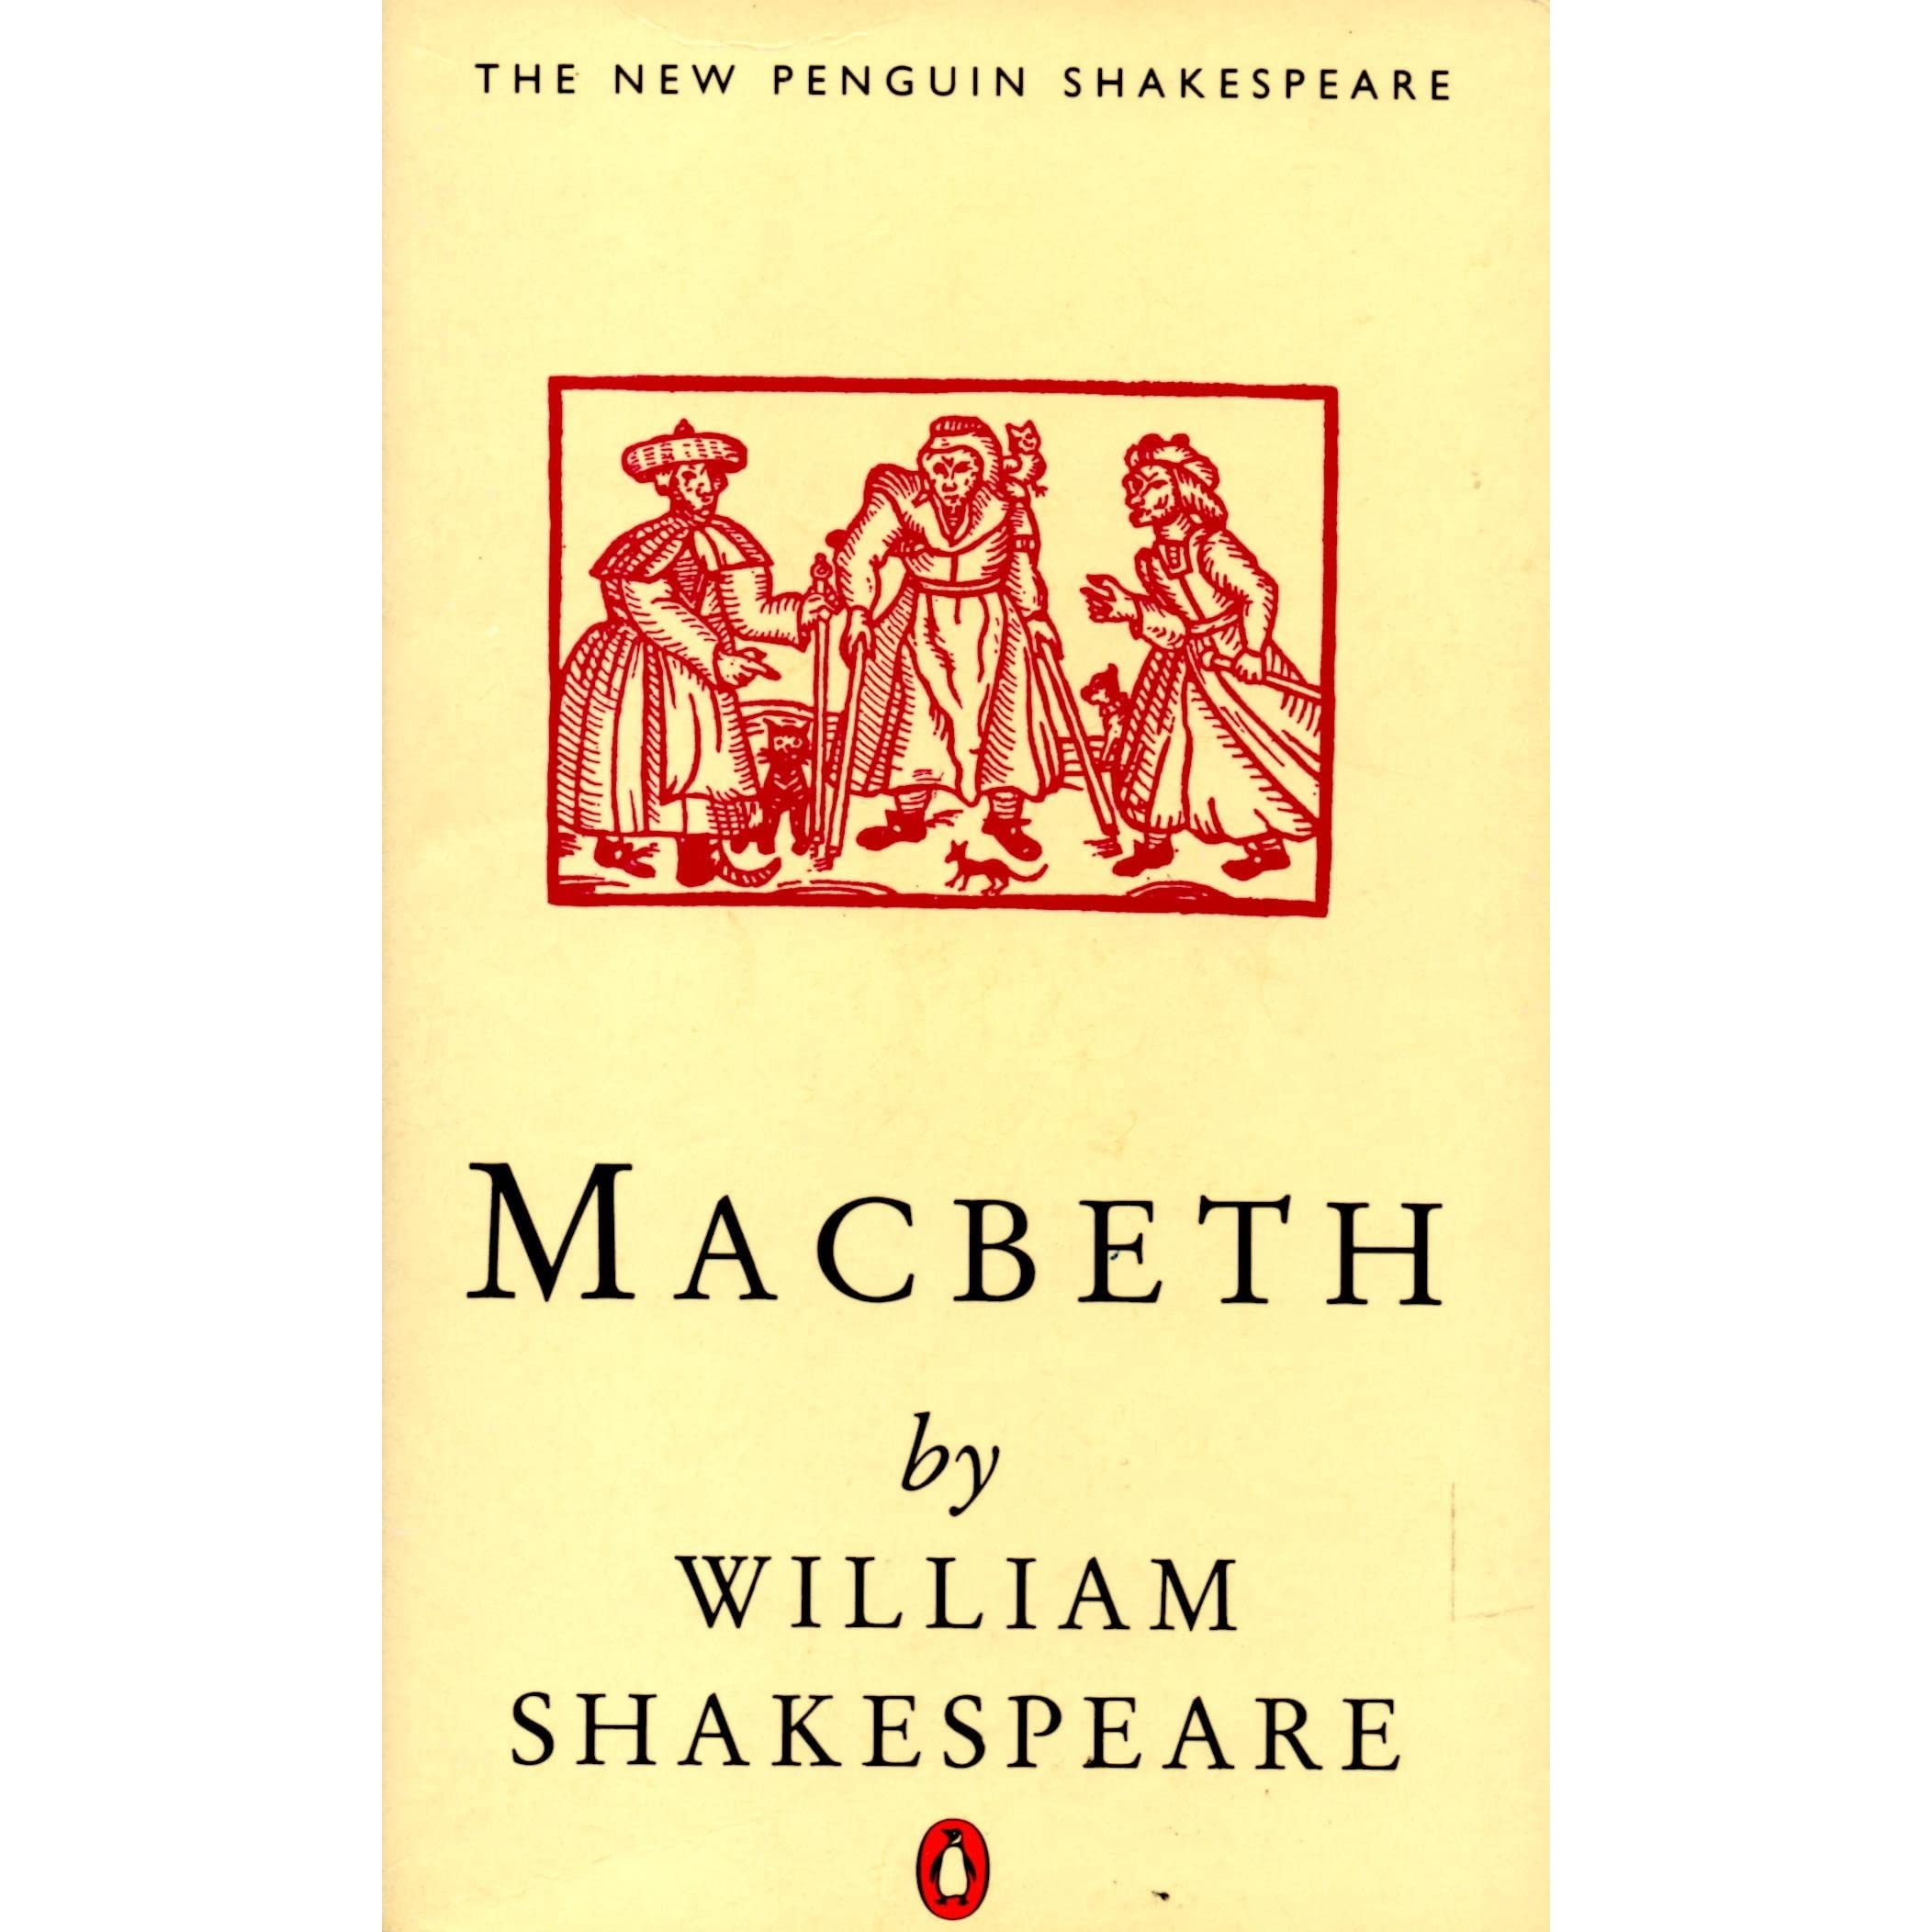 an analysis on the content of macbeth by william shakespeare Analysis, techniques for using the play as a bridge to other works  a teacher's guide to the signet classic edition of william shakespeare's macbeth 3 in the macbeth of holinshed's chronicles, the wife of macbeth is hardly mentioned shakespeare develops the impressive.